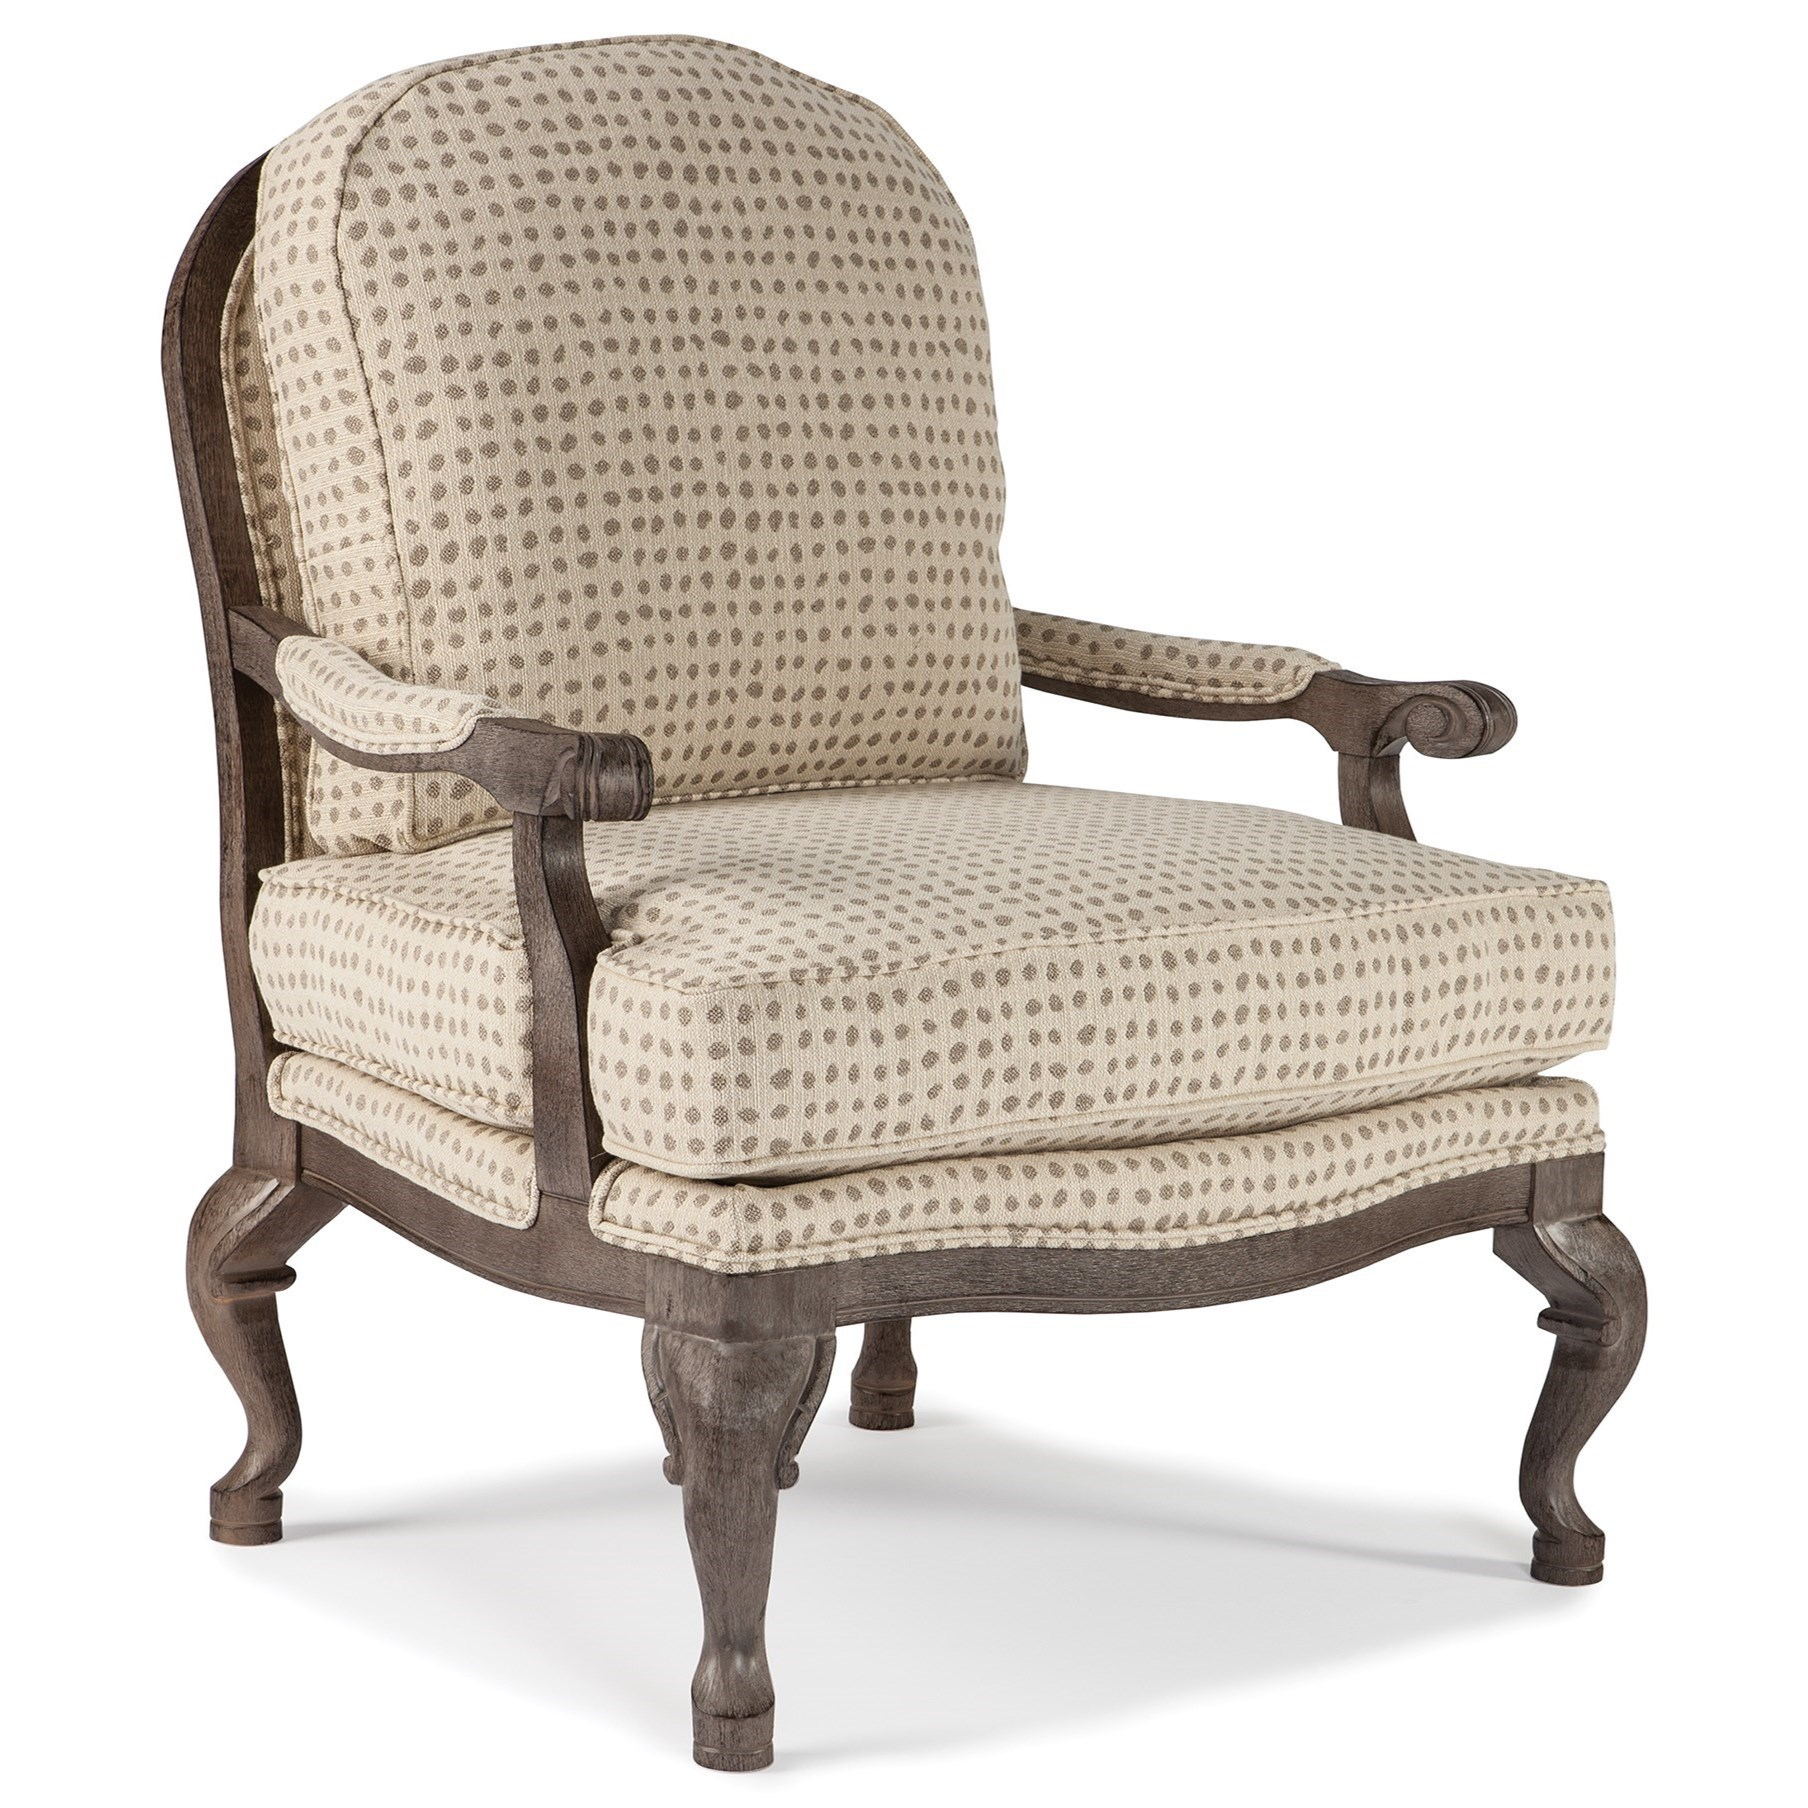 Best Home Furnishings Chairs   AccentCogan Exposed Wood Accent Chair